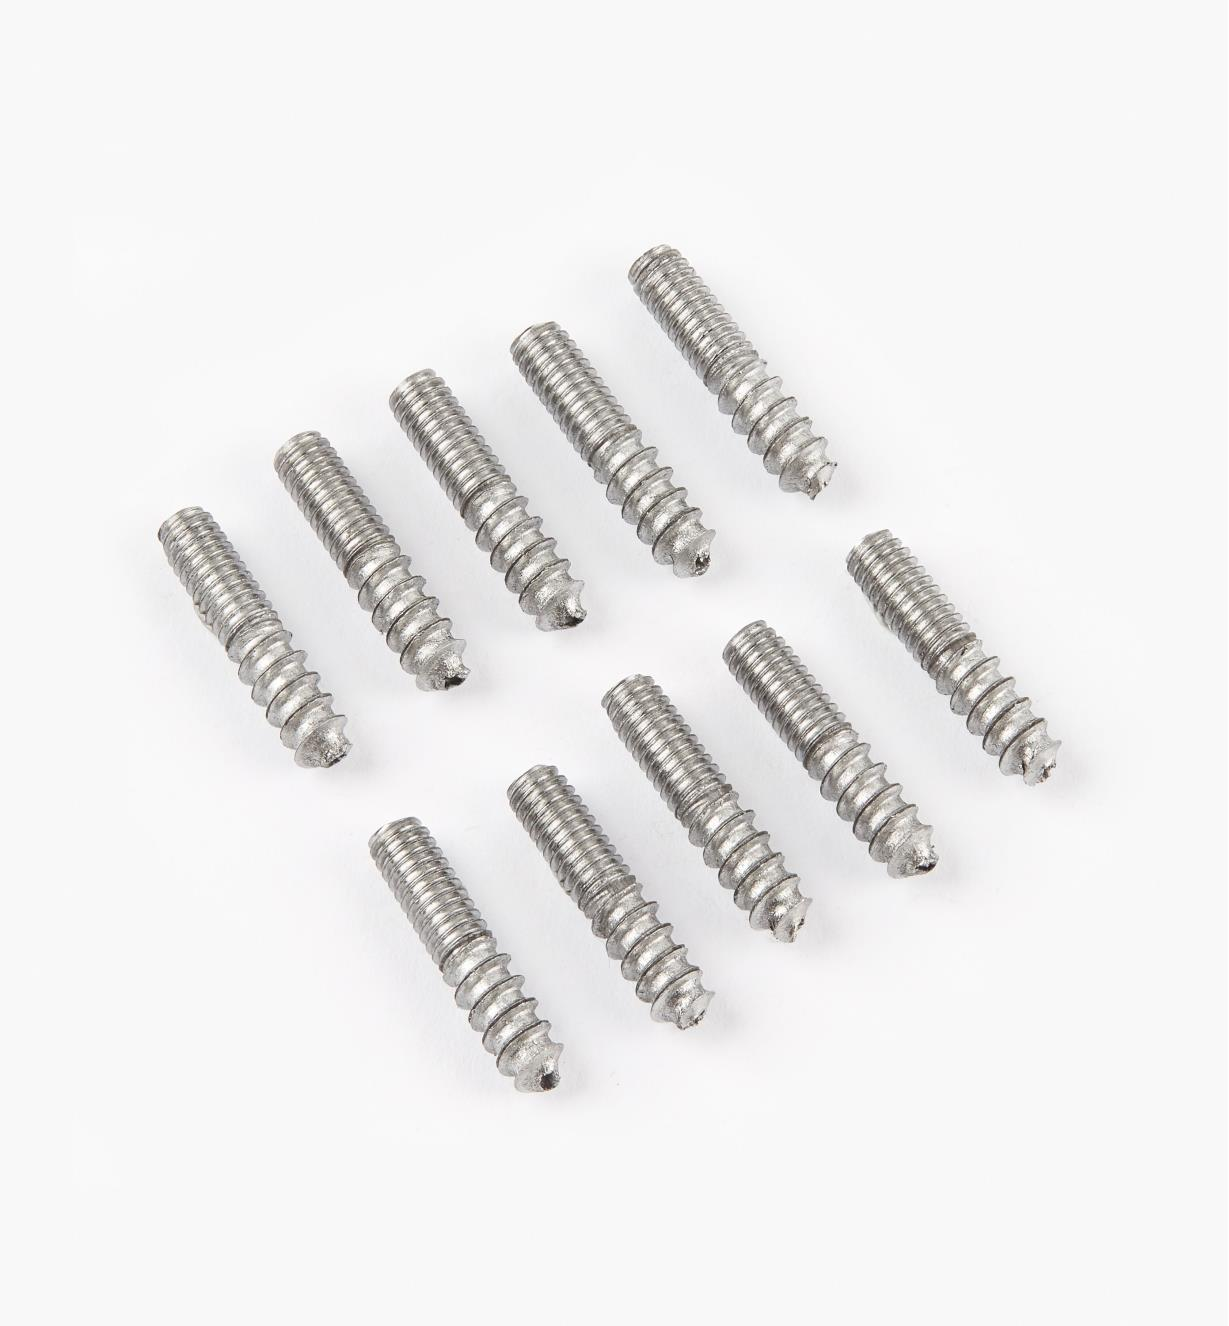 "00N3206 - 8 32 x  3/4"" Hanger Bolts, pkg. of 10"